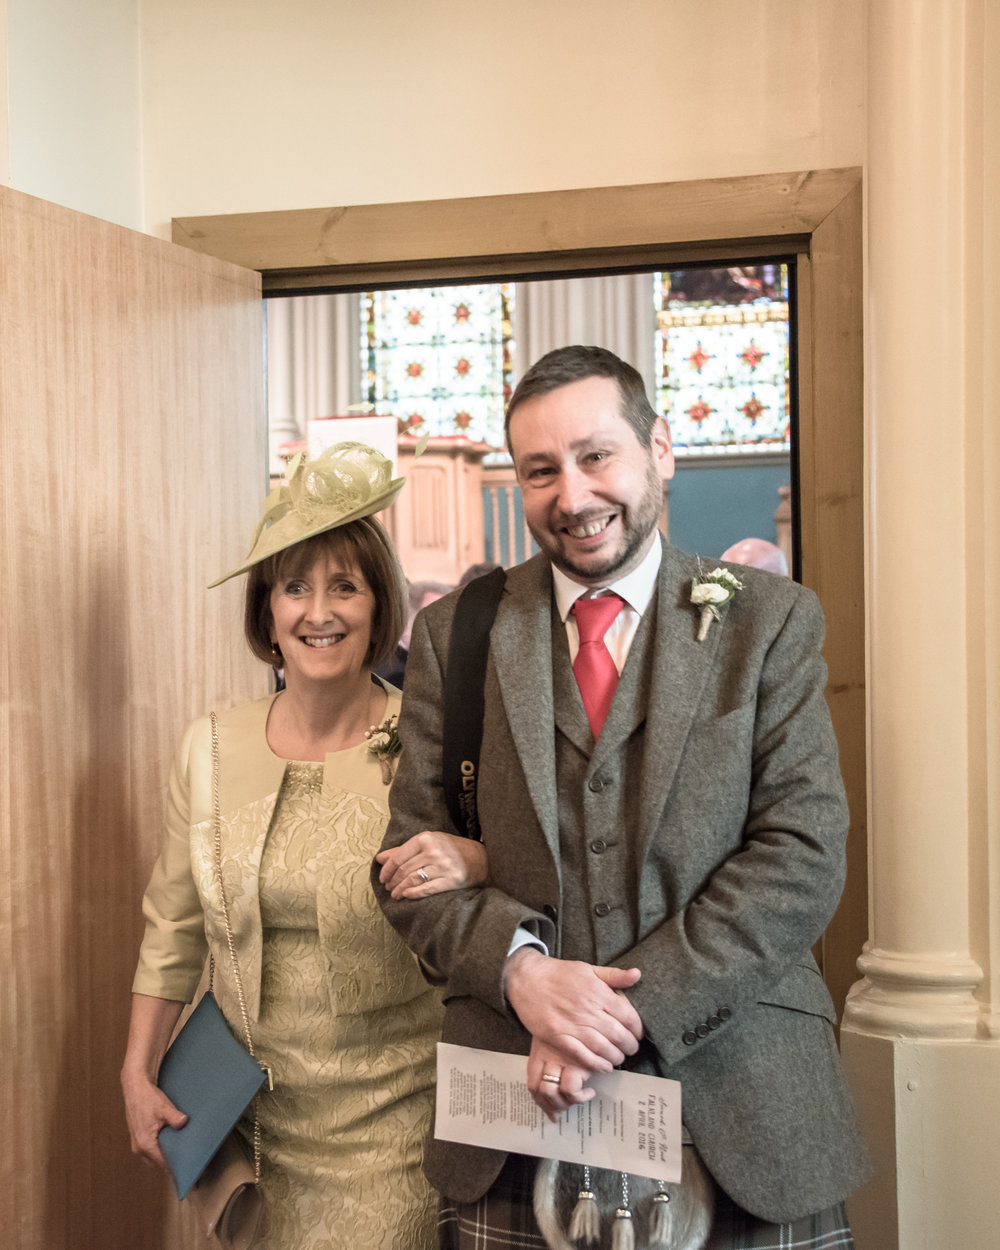 2016-04-02 SIONED AND NEIL FALKLAND MYRES CASTLE151242.jpg